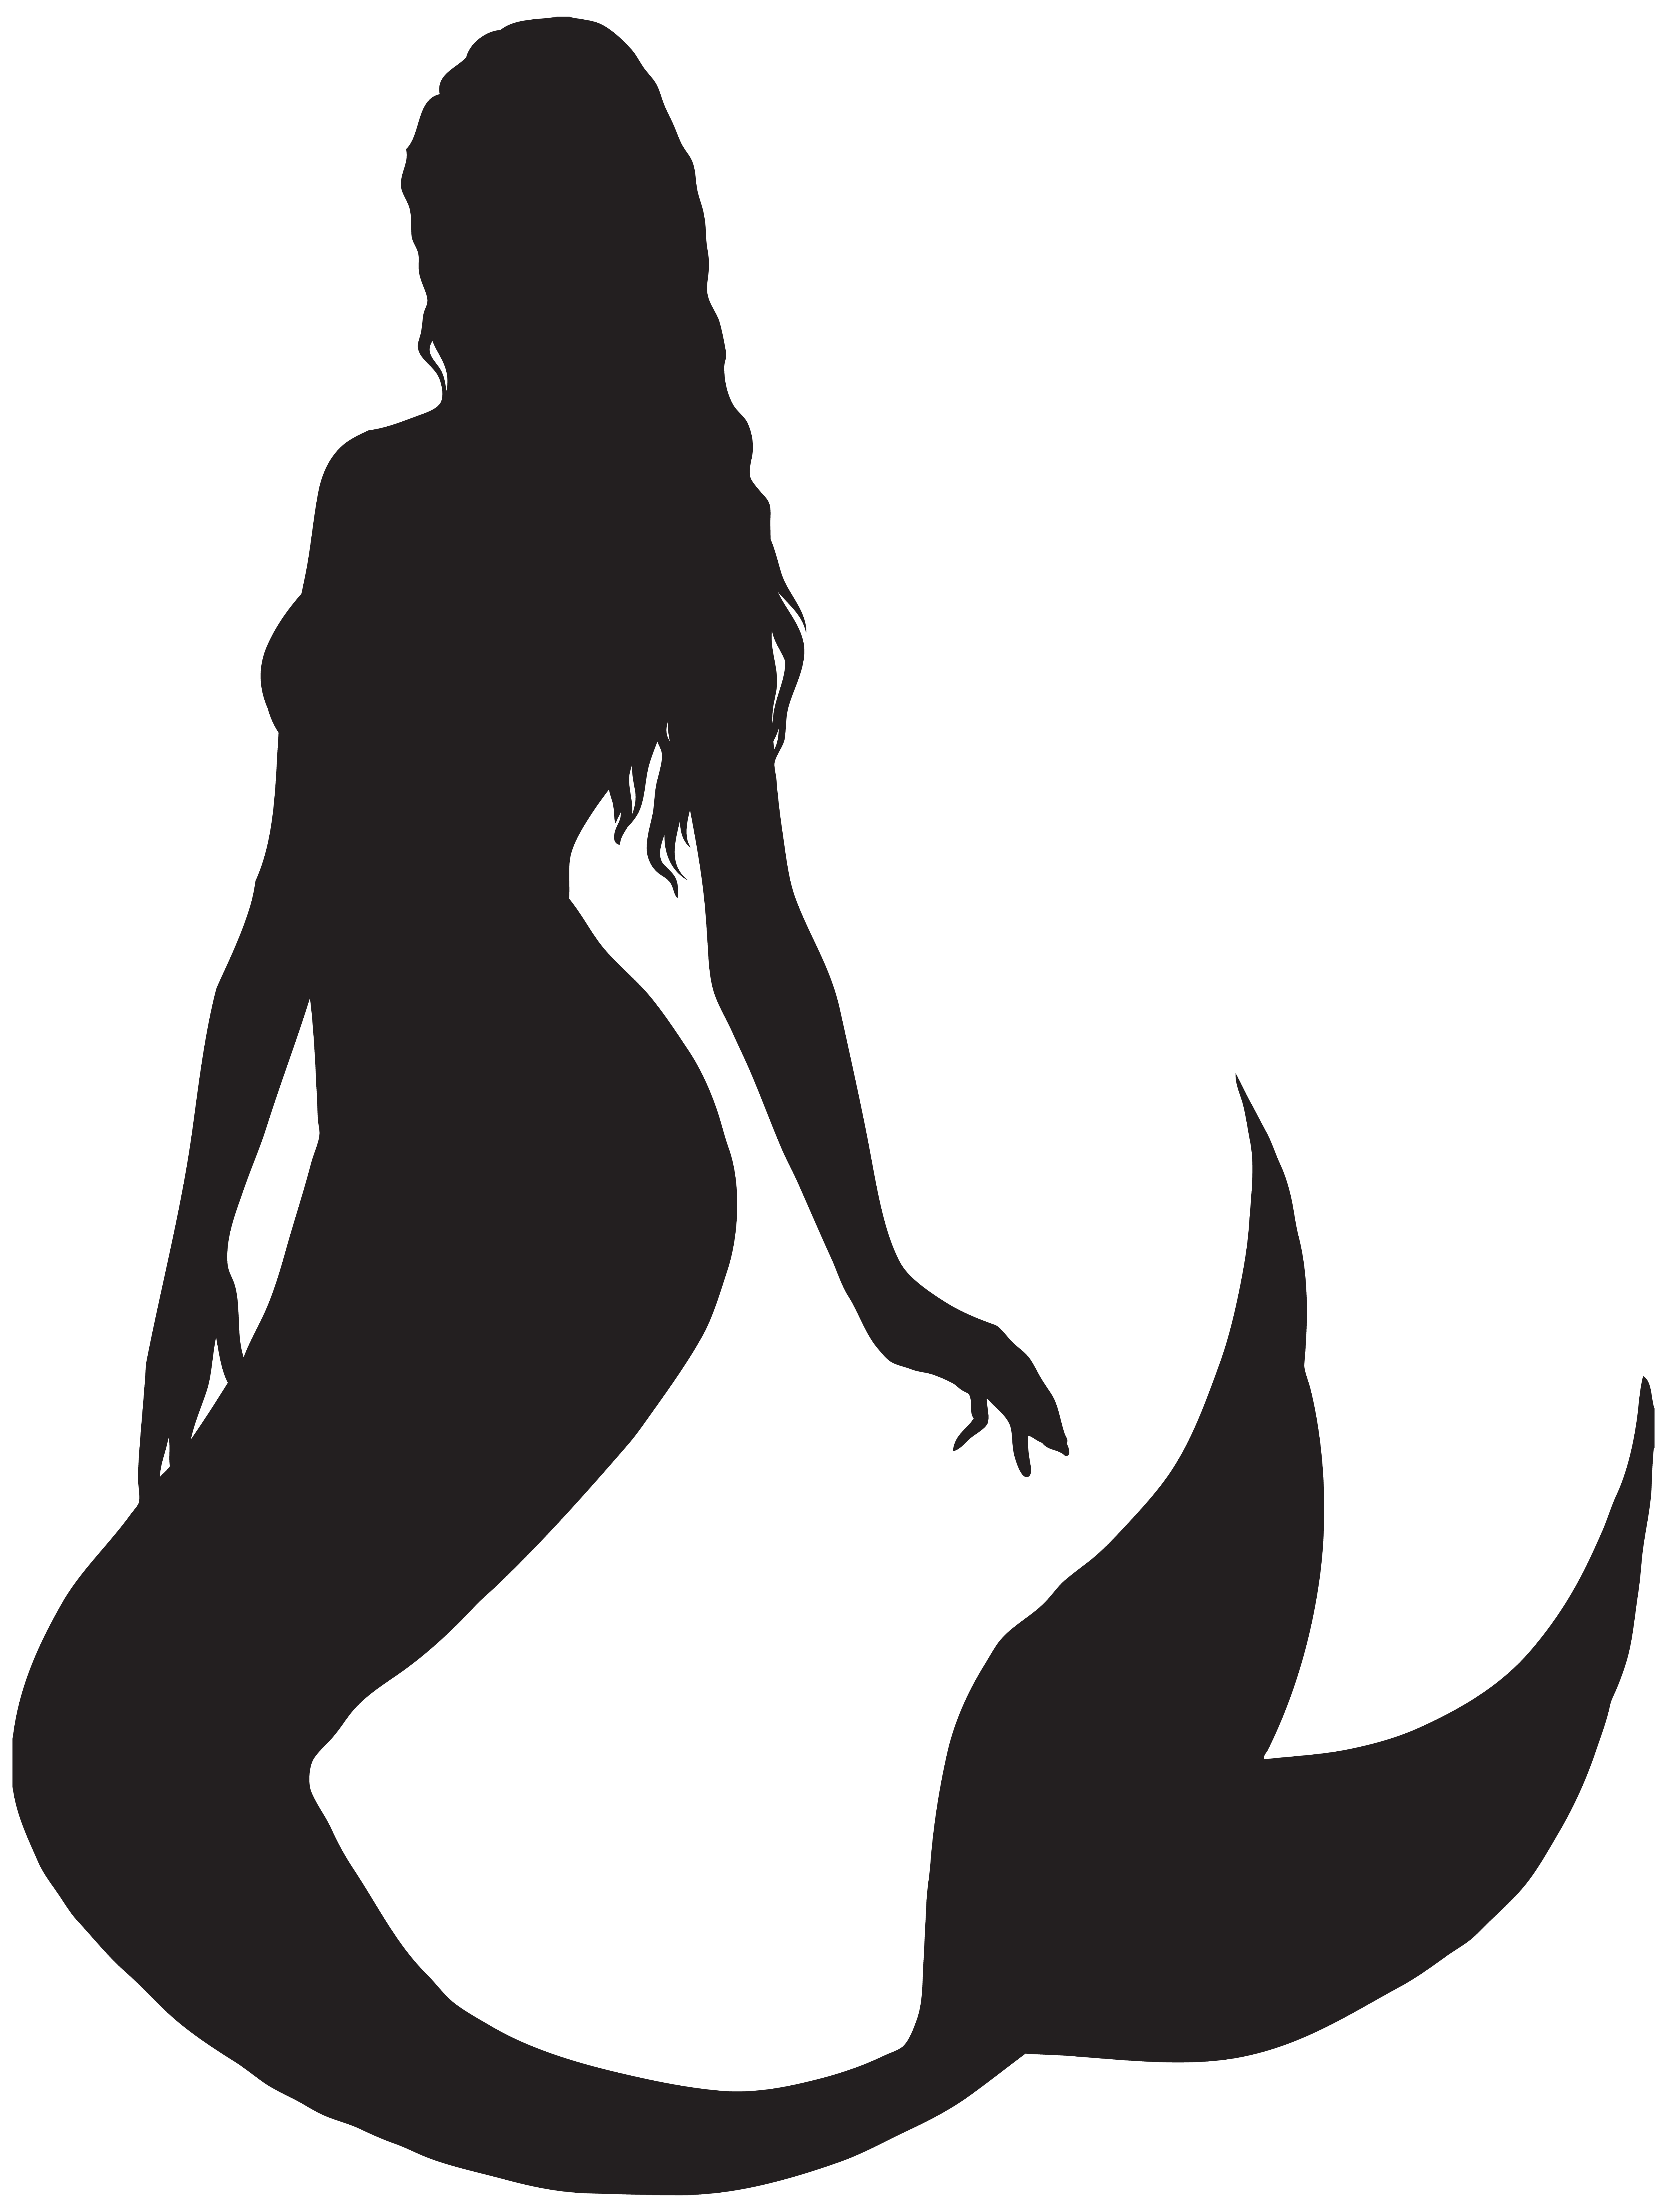 Mermaid clipart background. Silhouette png clip art